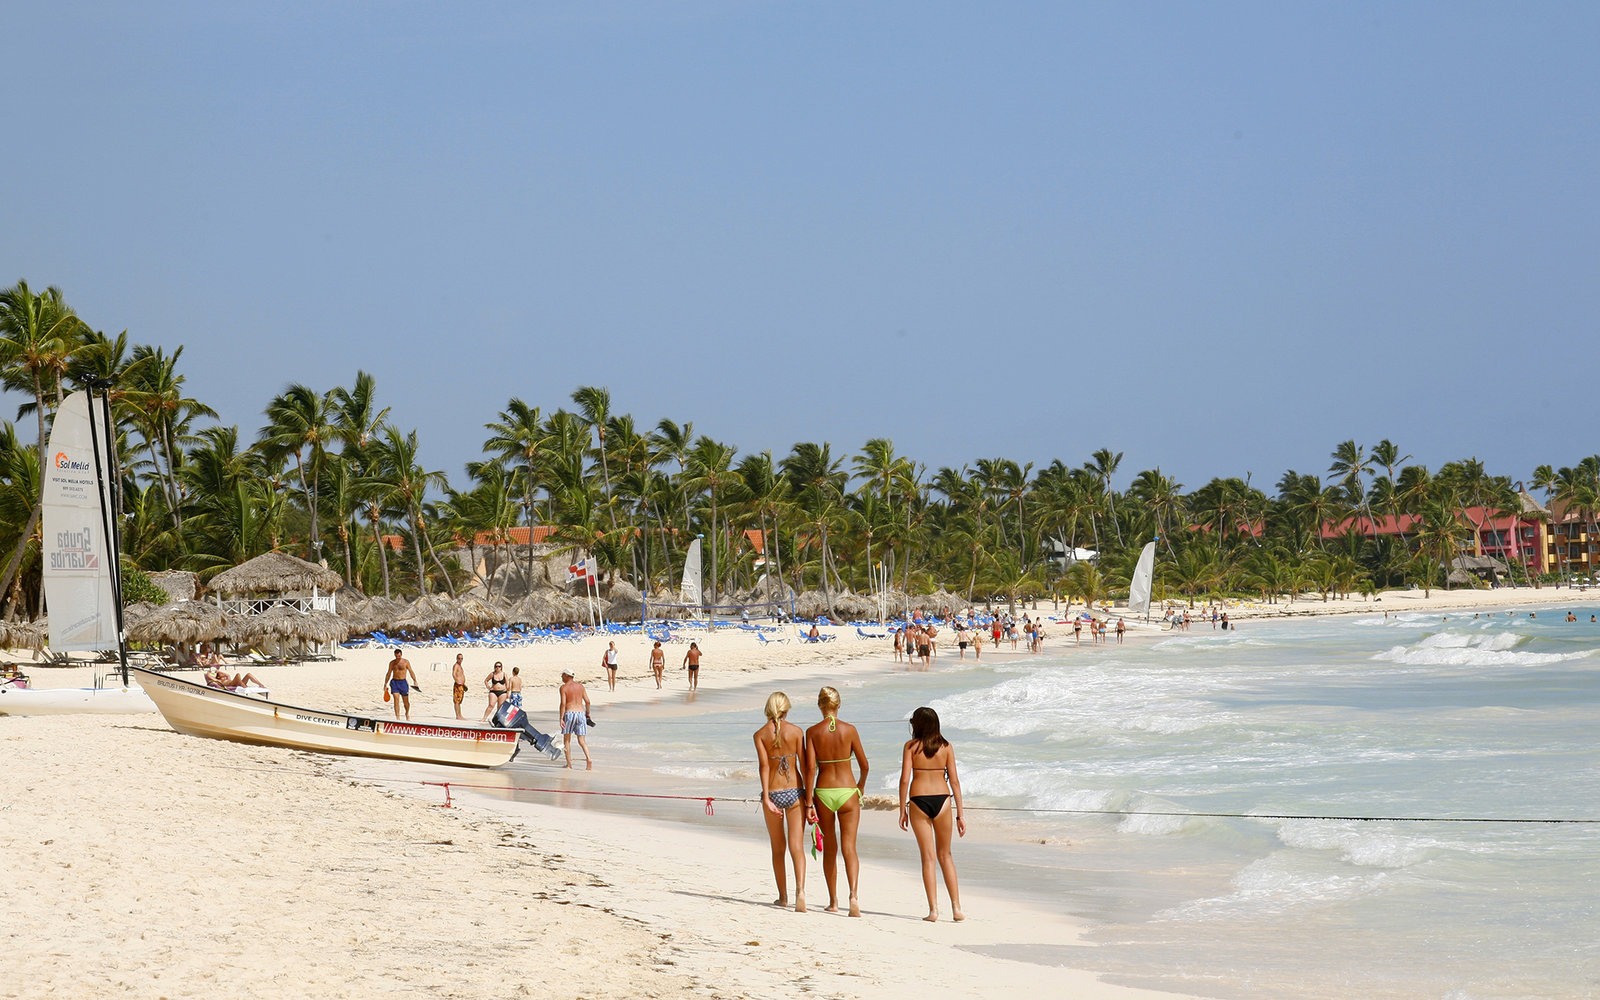 (GERMANY OUT) Dominican Republic - Punta Cana: beach (Photo by Baar/ullstein bild via Getty Images)